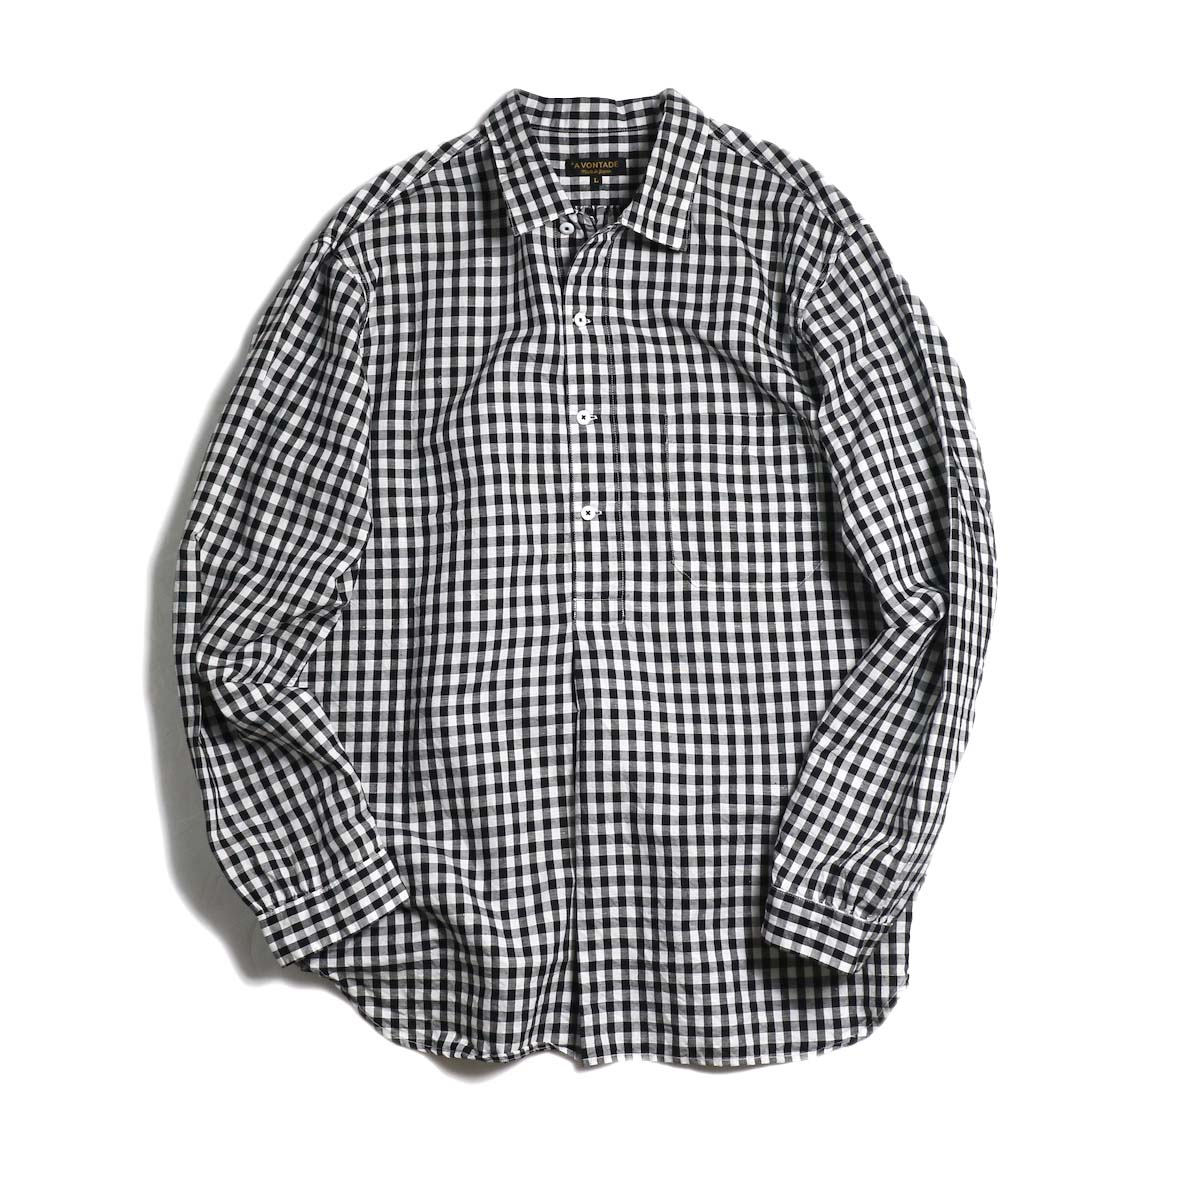 A VONTADE / Classic Pullover Shirt L/S -BLACK GINGHAM